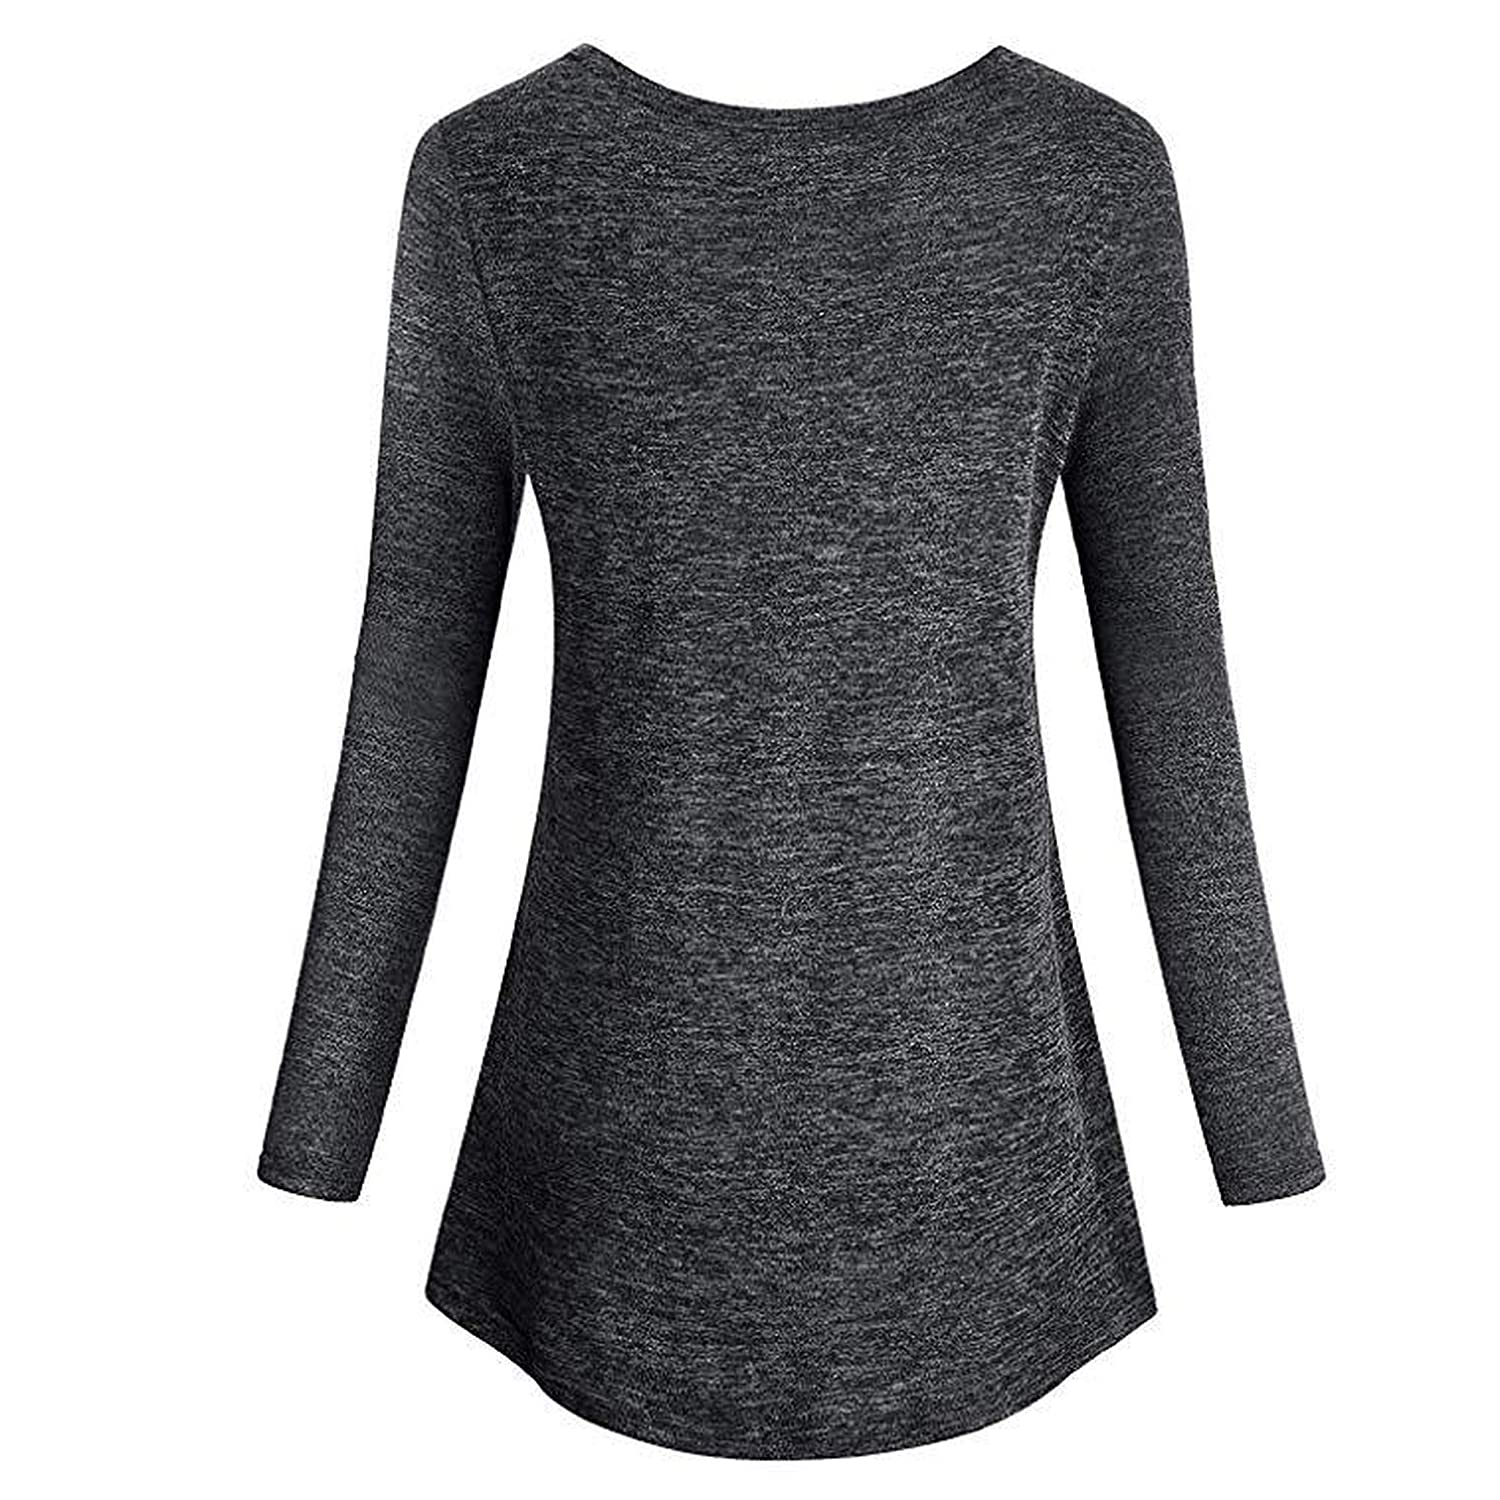 es-uk Womens Casual Long Sleeve V Neck Relaxed Fit Flare Waist Line Tunic Sweater Top T Shirt